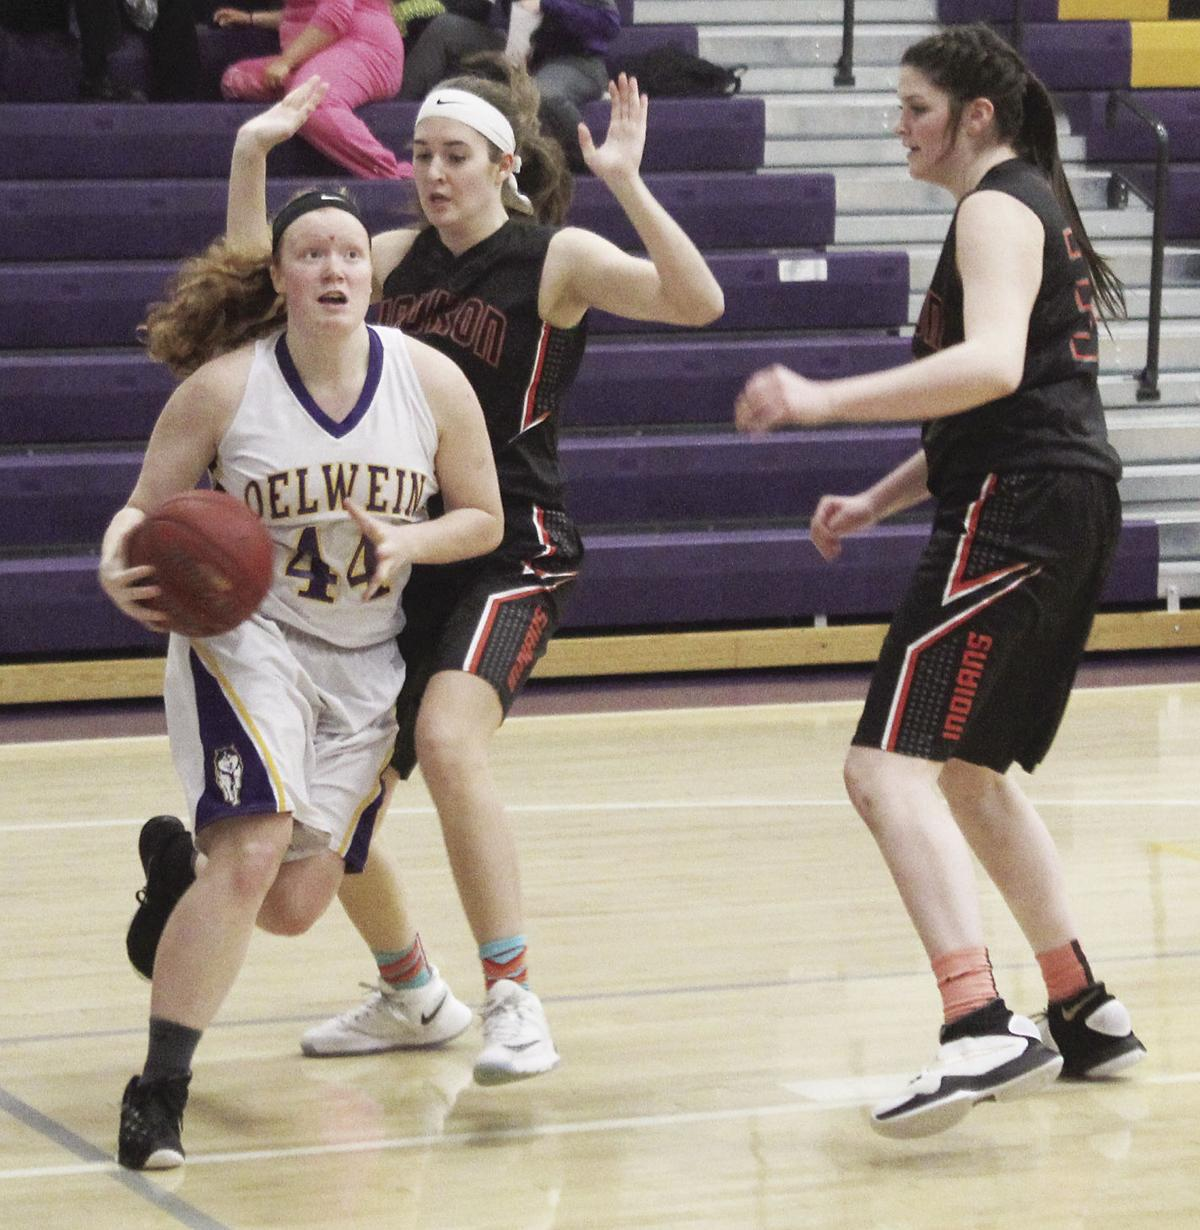 oelwein girls Watch oelwein high school girls varsity basketball highlights and check out their schedule and roster on hudl.